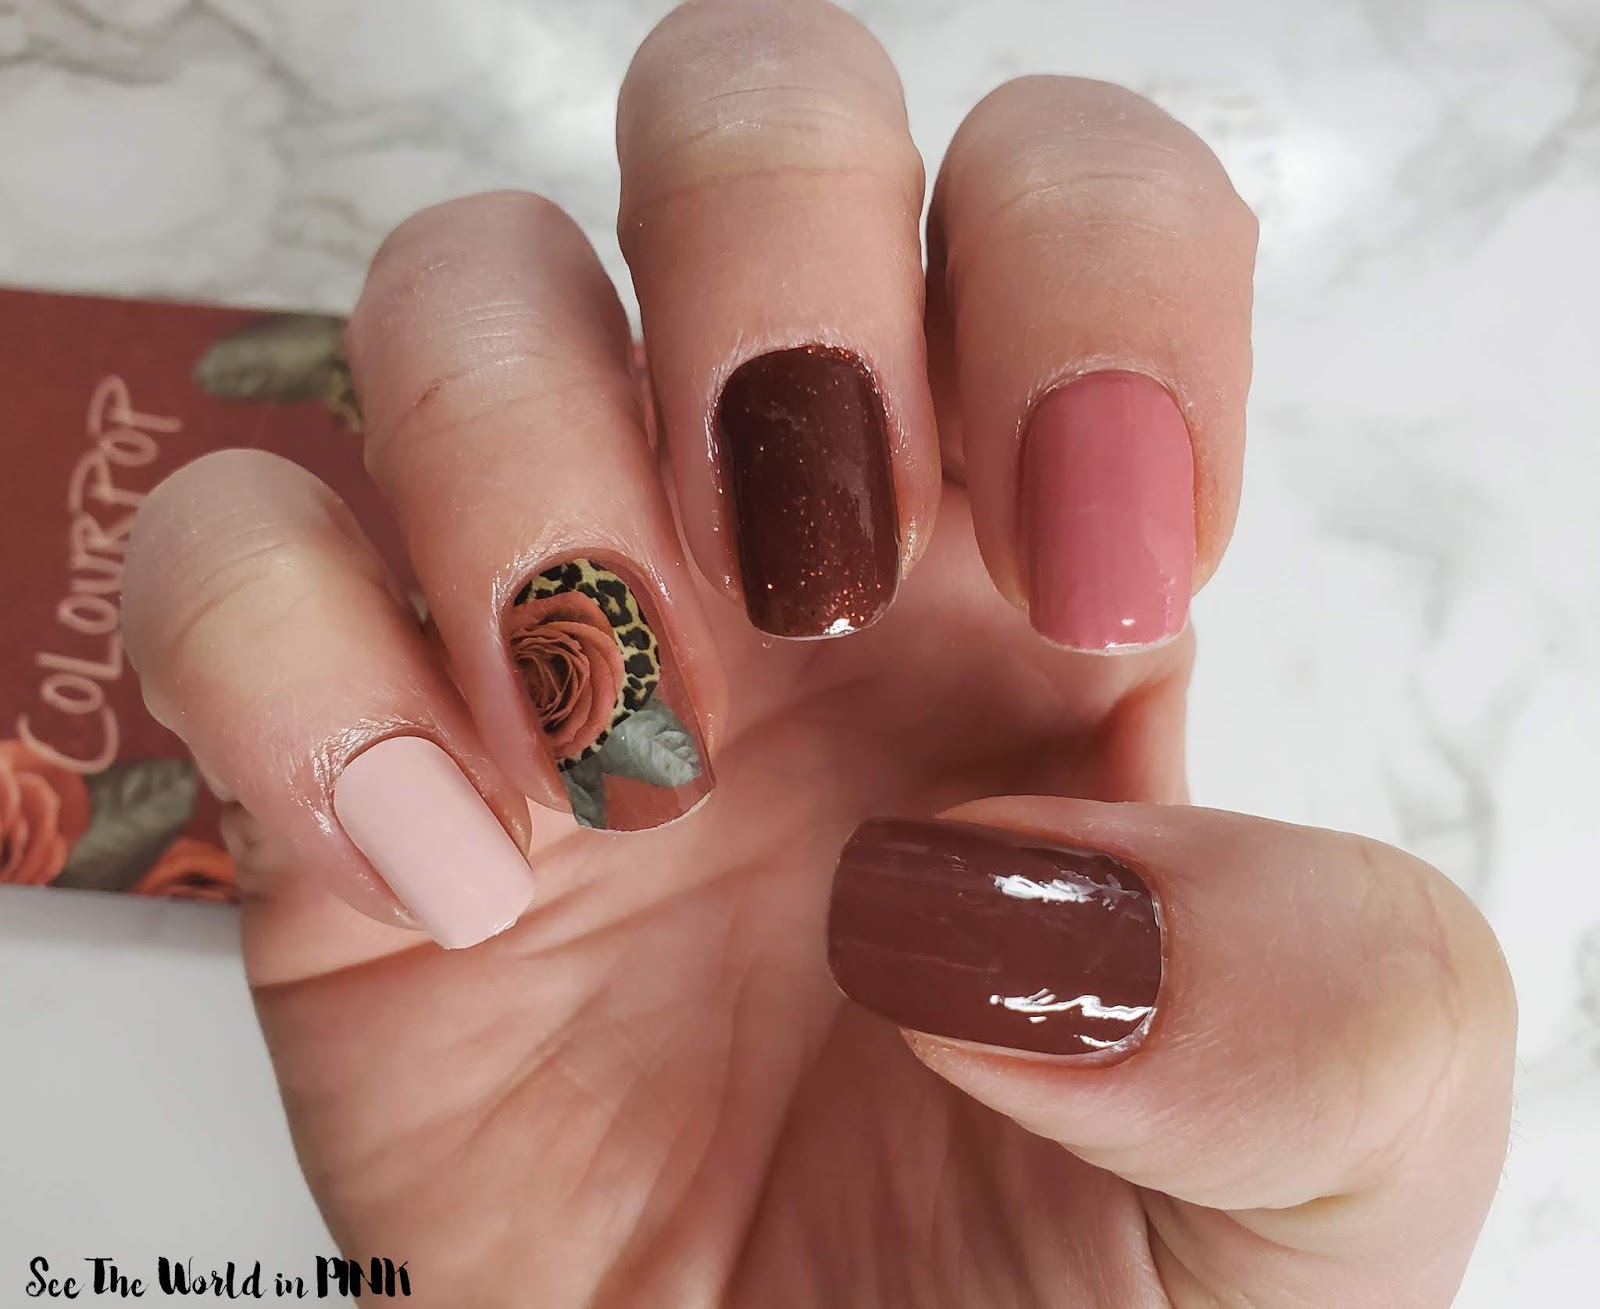 Manicure Monday - ColourPop Nail Art Decals Burgundy Rose + Gradient Set